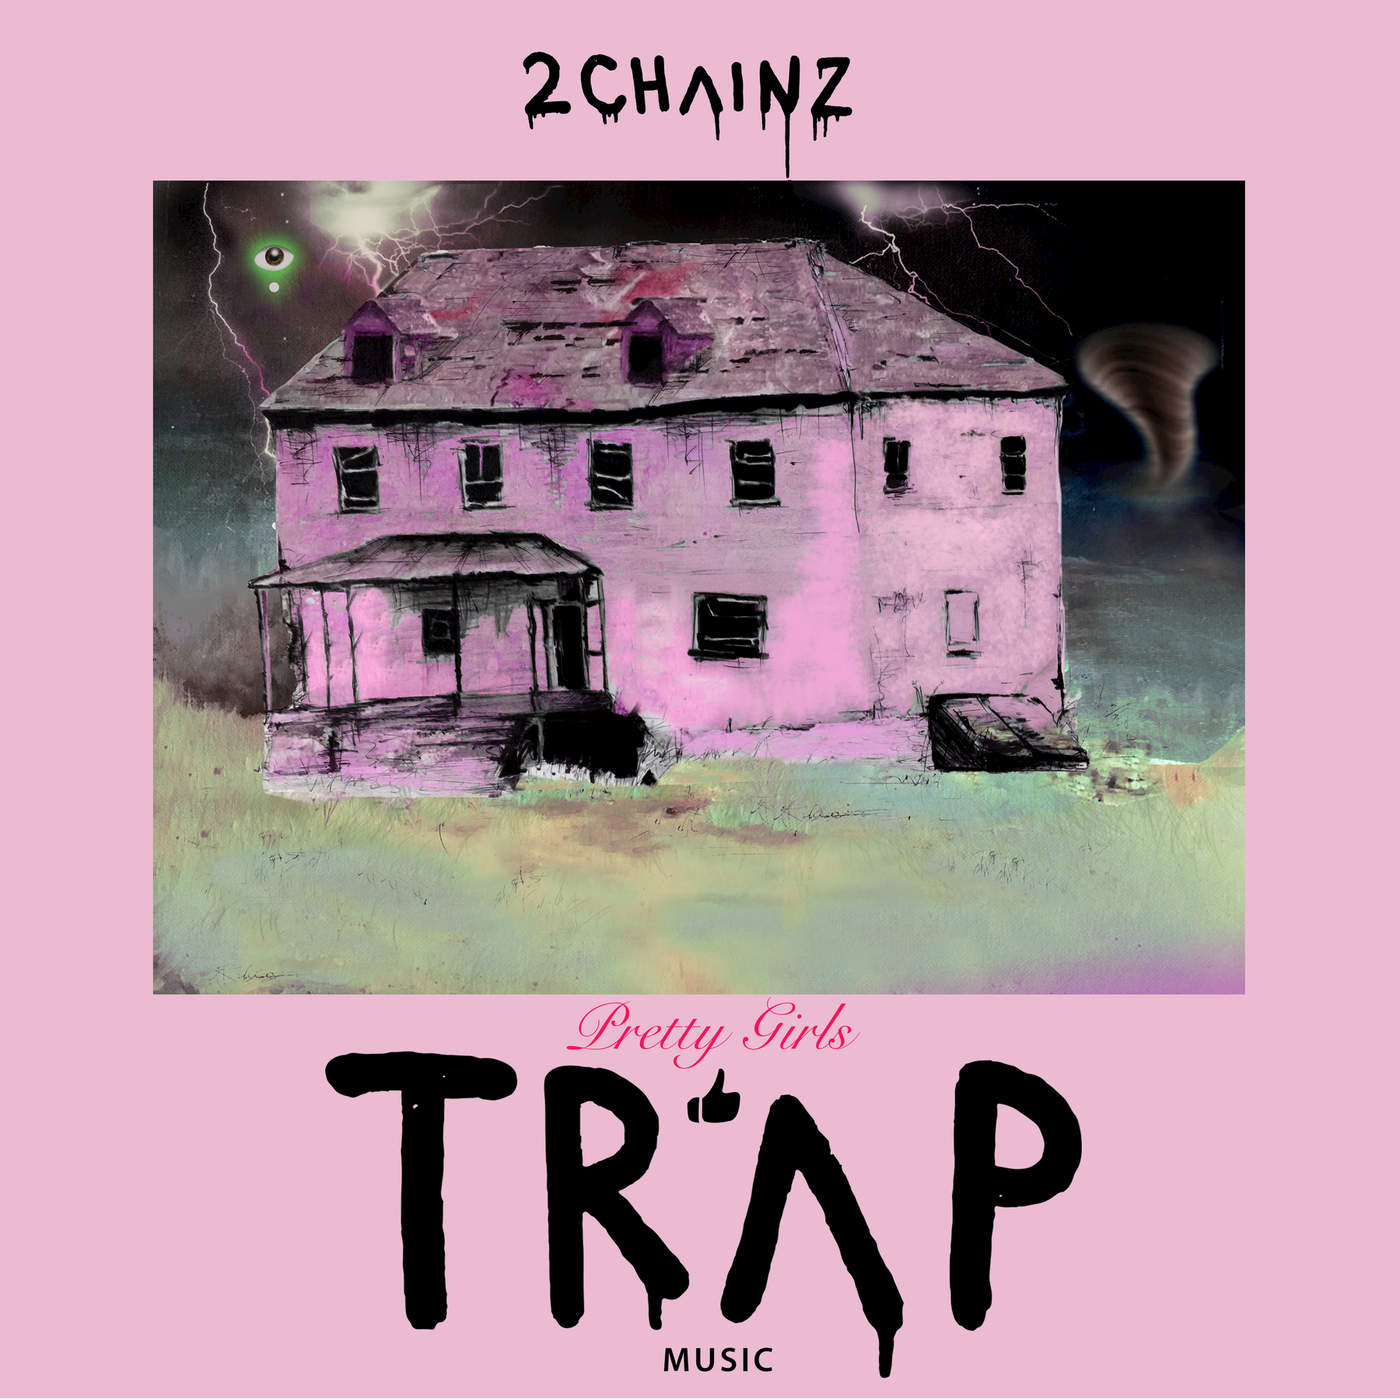 2 Chainz - Pretty Girls Like Trap Music Cover